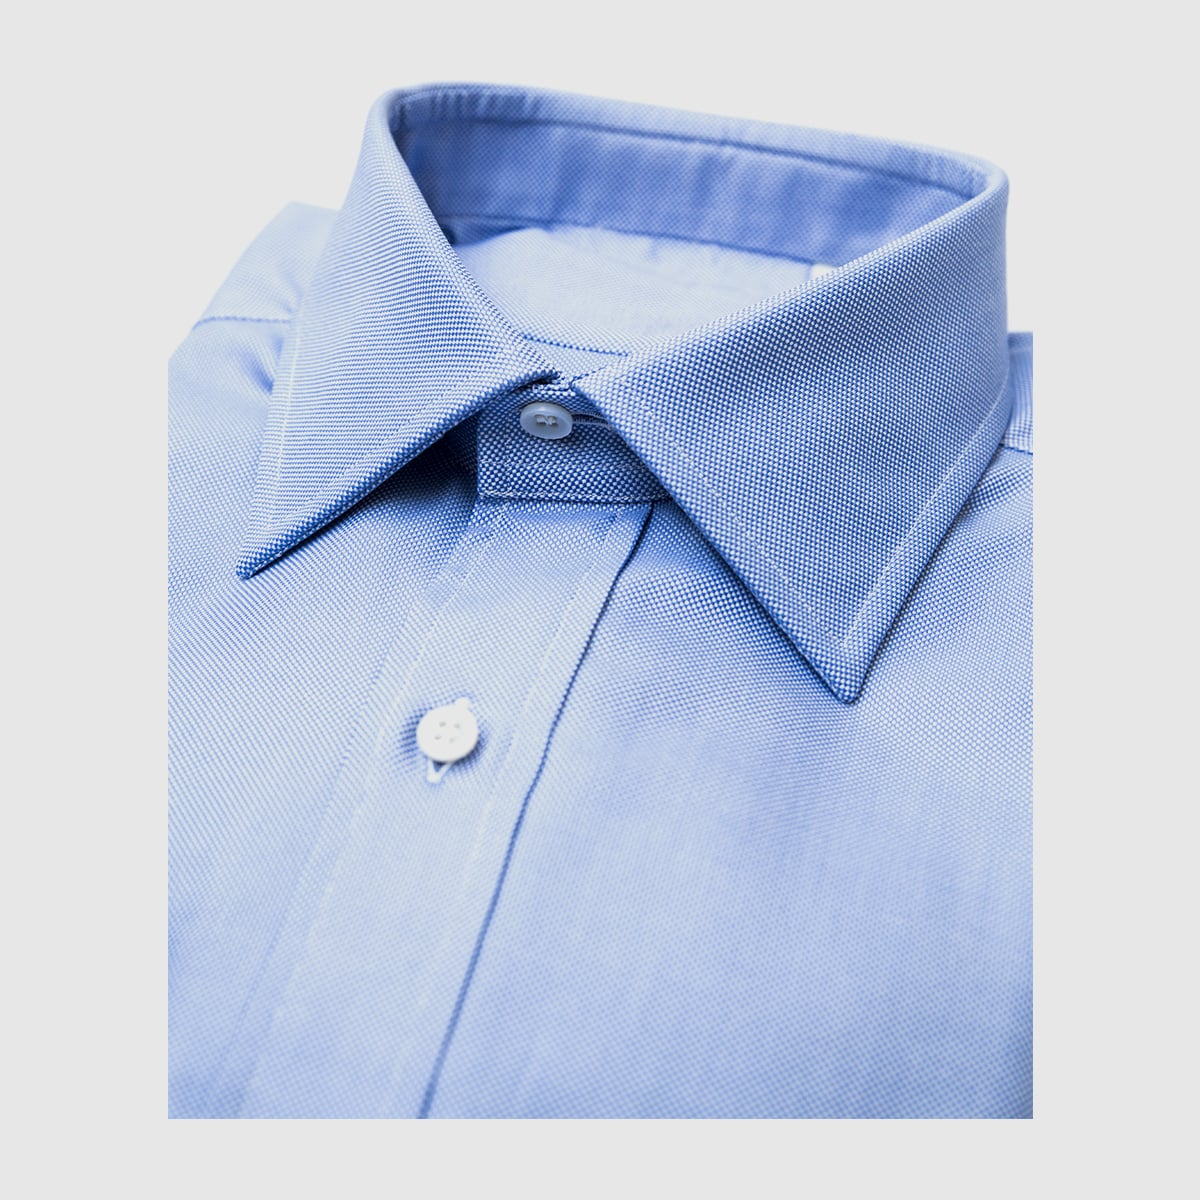 Azure Oxford shirt